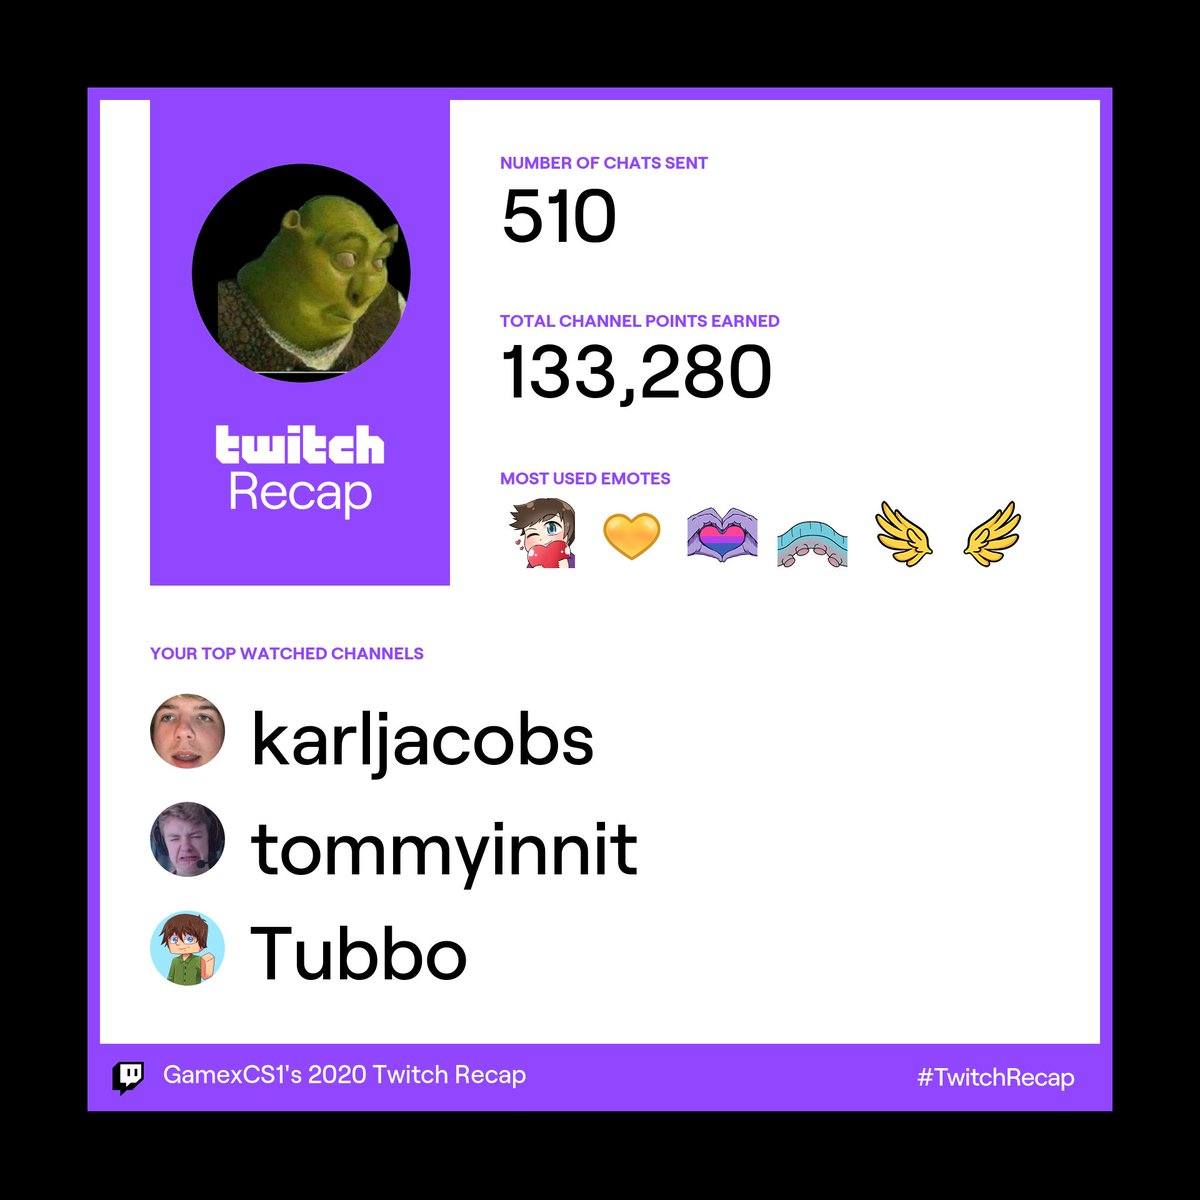 Also I've apparently watched almost 400 hours worth of Minecraft content 😐💀 #TwitchRecap